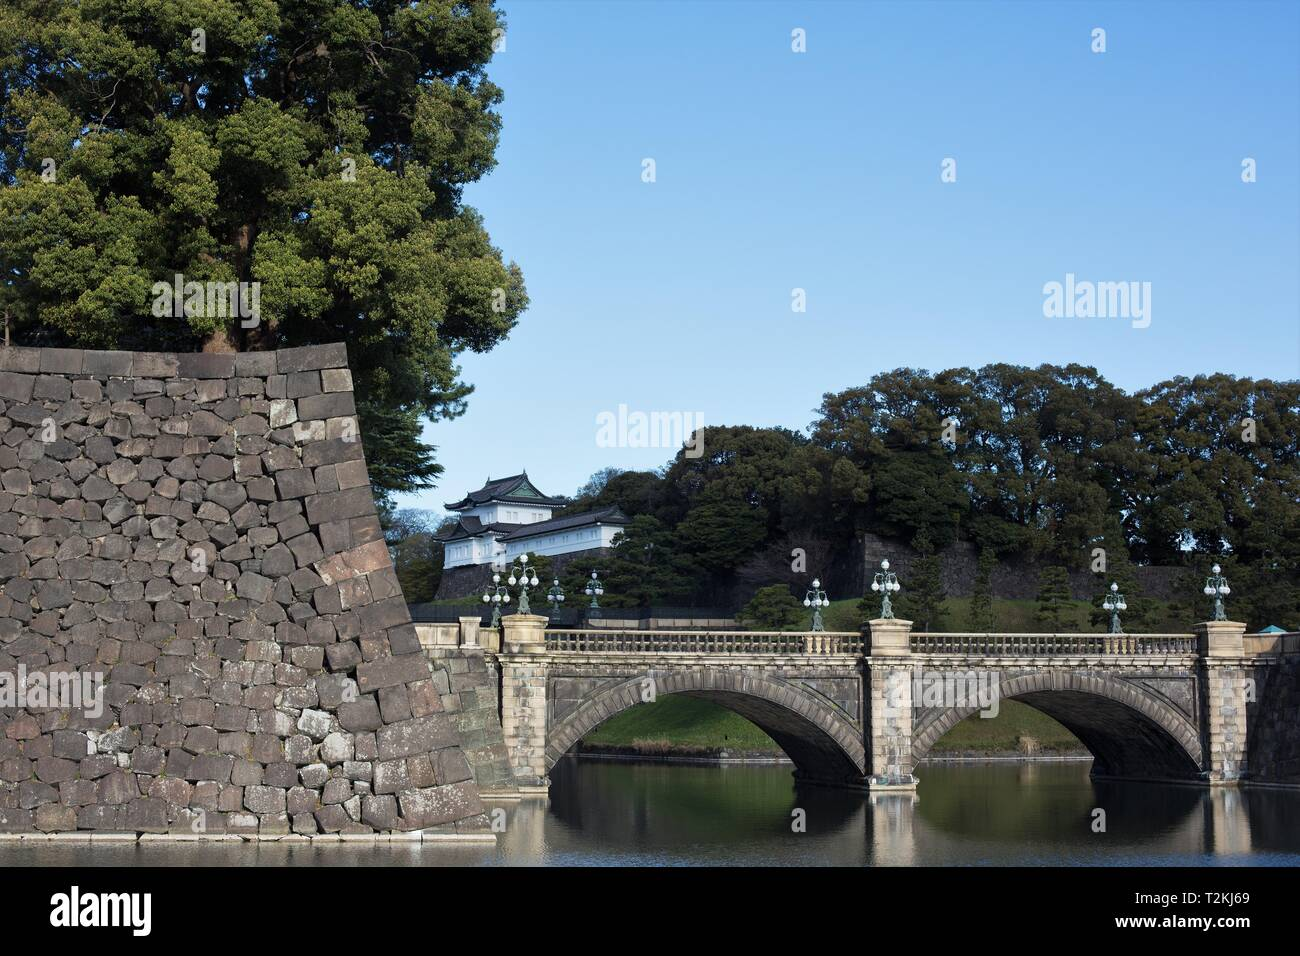 Nijubashi bridge at the Imperial Palace in Tokyo, Japan. - Stock Image